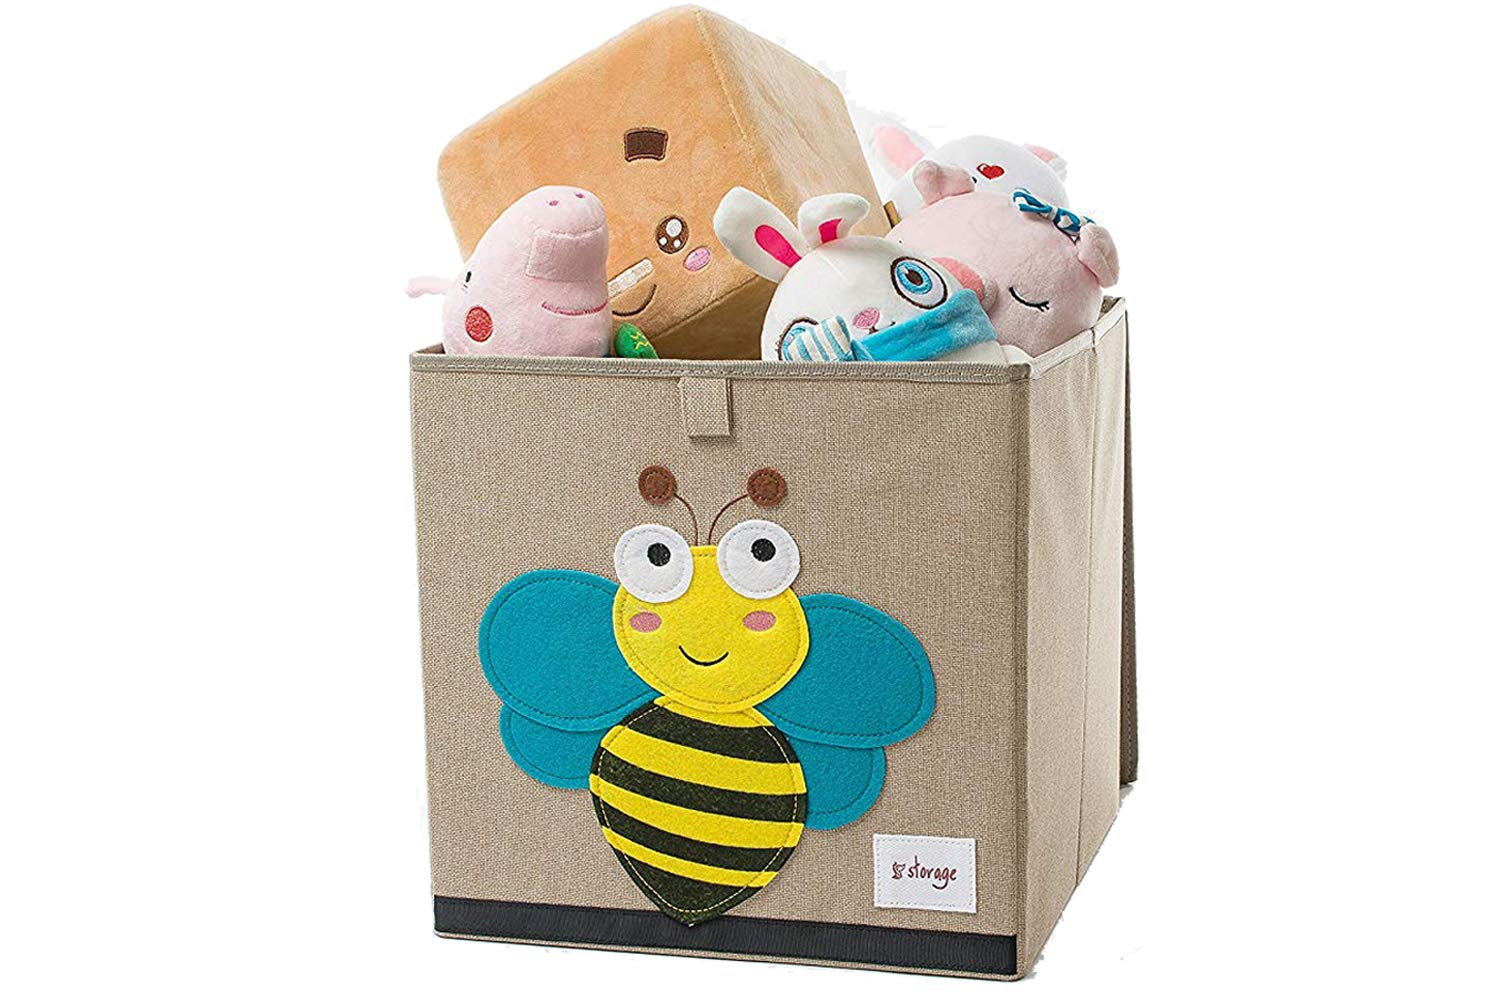 TruReey storage chest with lid, sturdy, foldable, and easy to clean, toy storage containers, 33X33X33cm, Bee